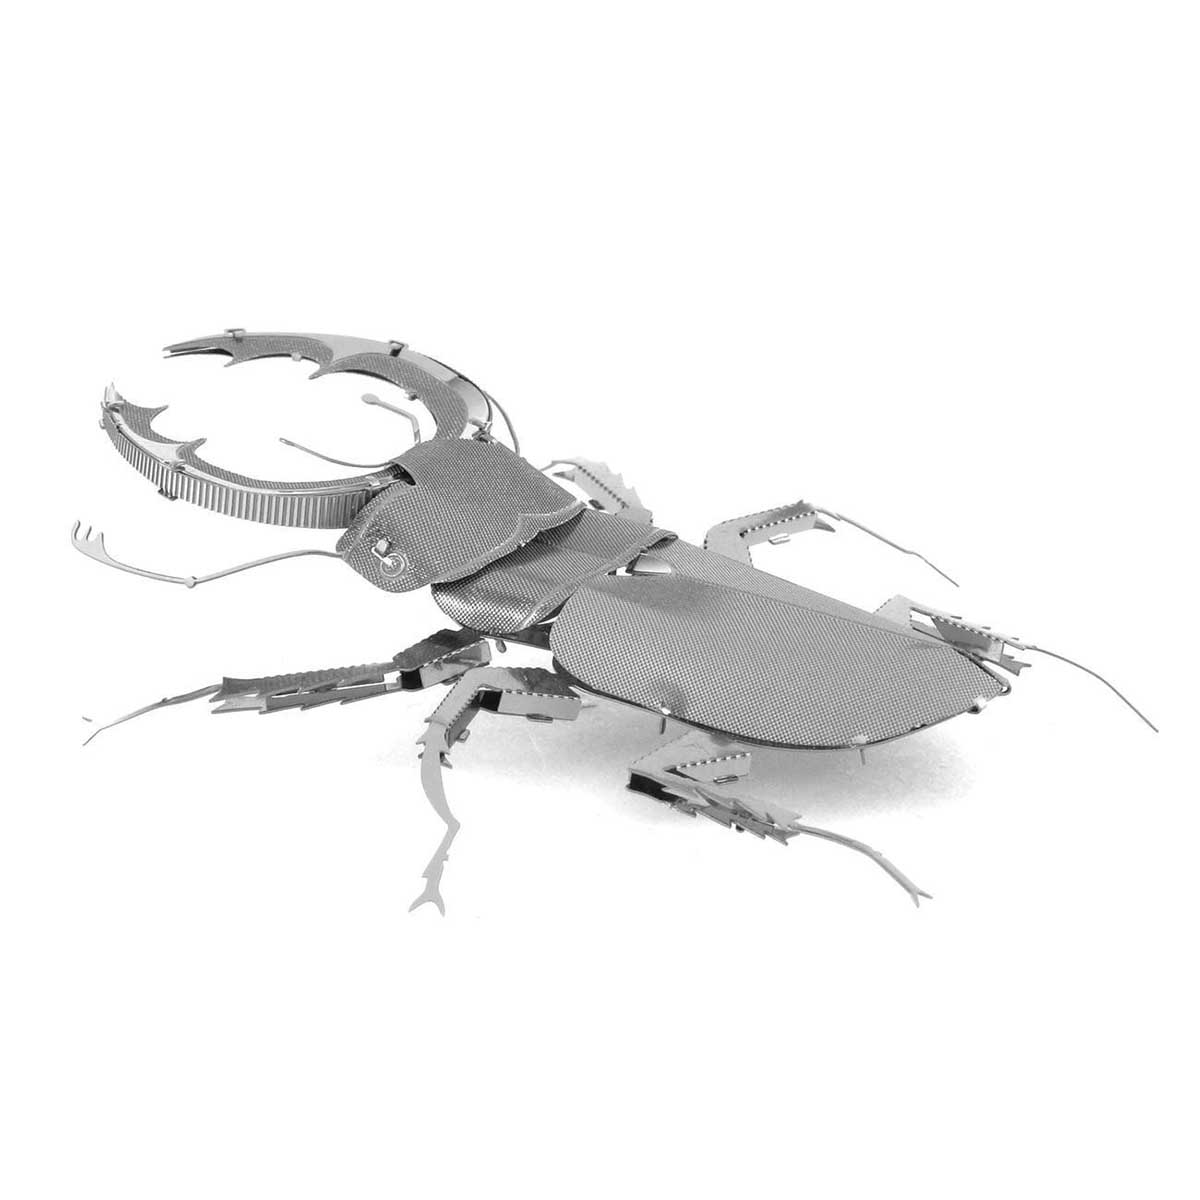 Stag Beetle Butterflies and Insects Metal Puzzles